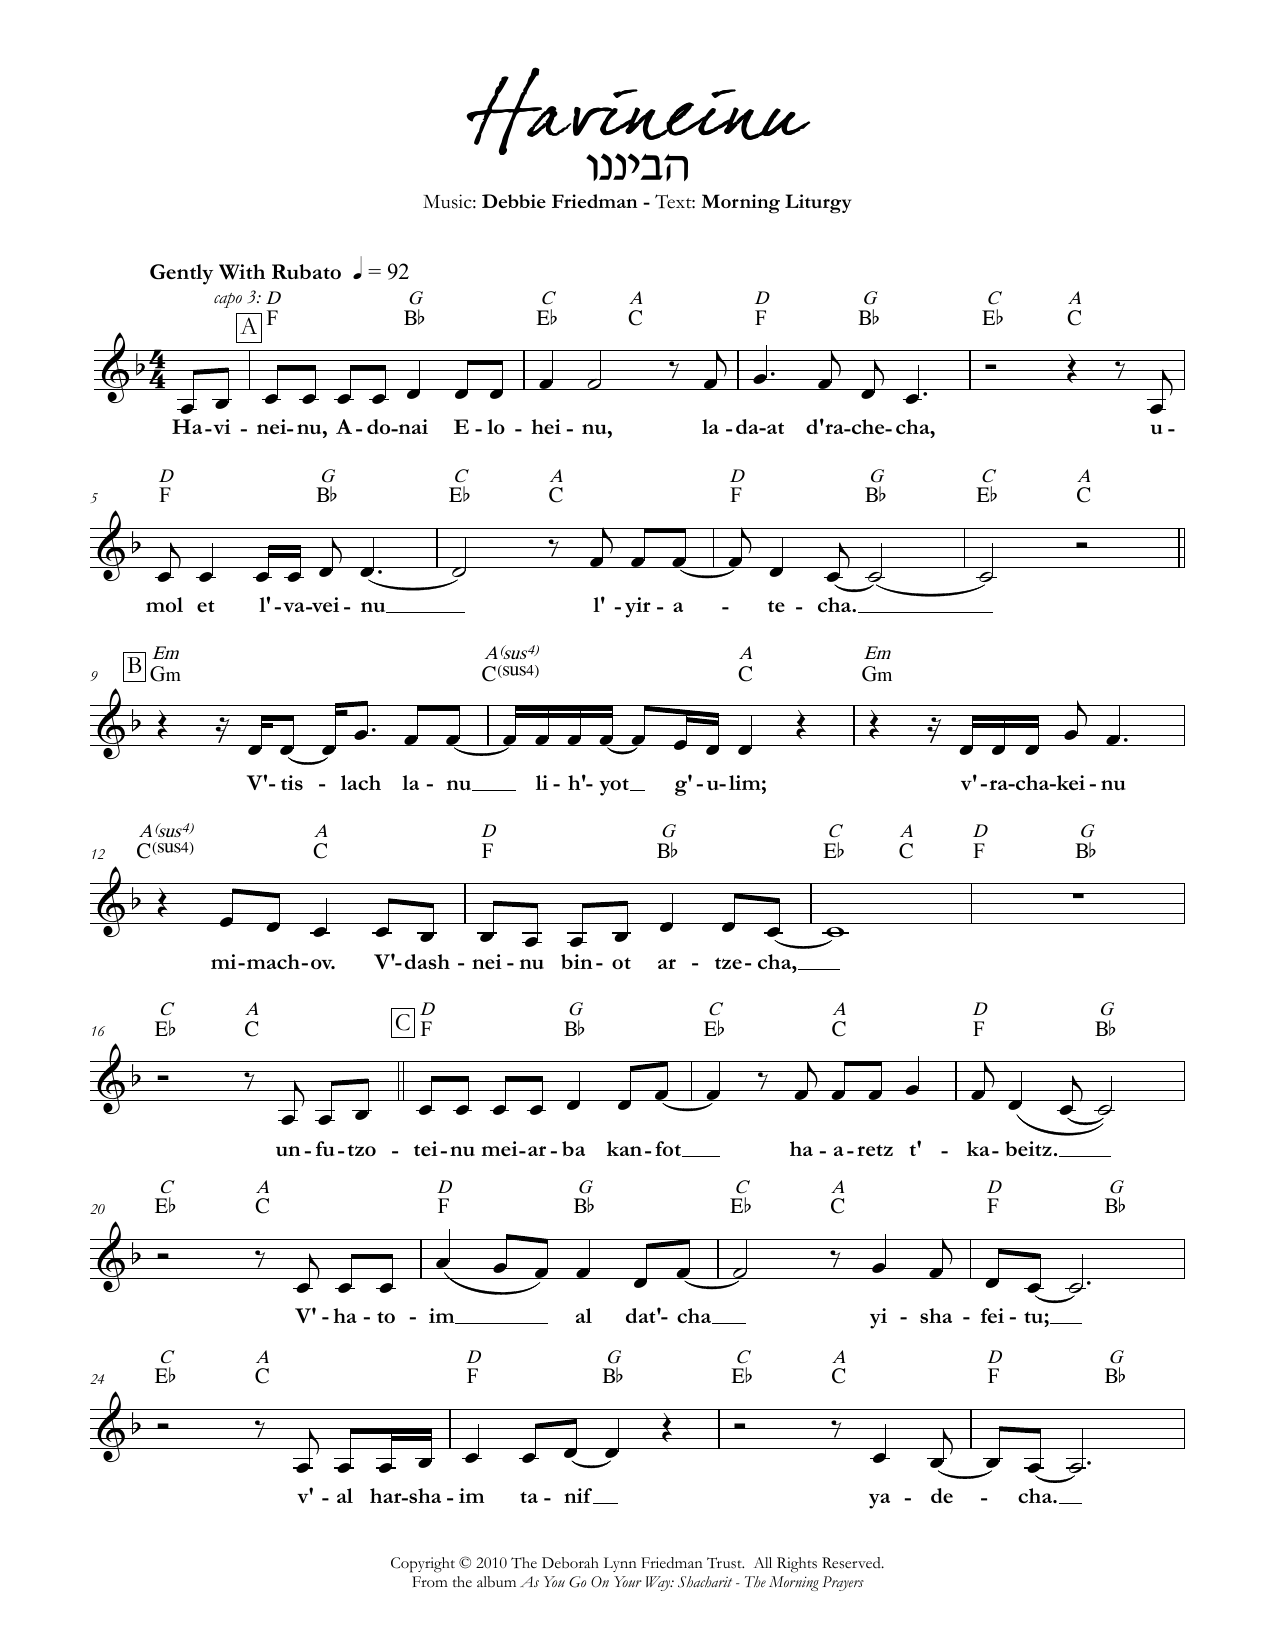 Havineinu Sheet Music